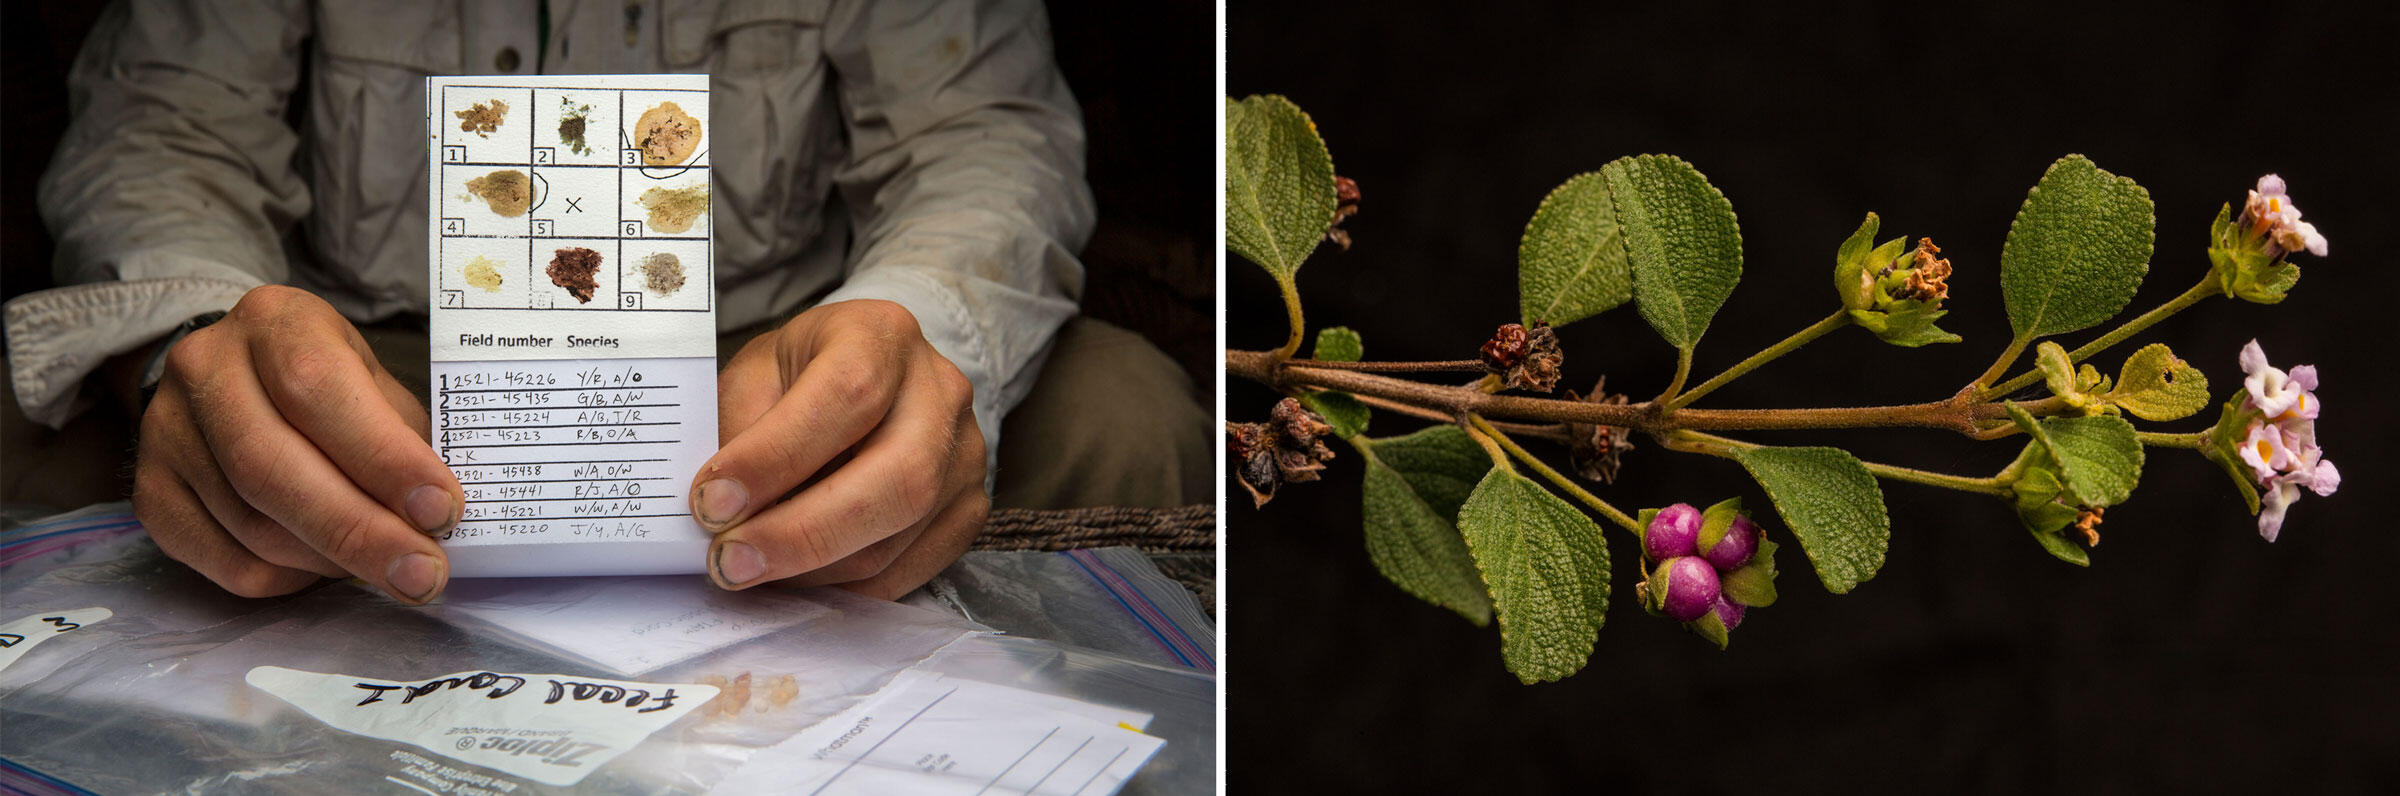 From left: Fecal samples provide a window into the species' diet and microbiome; wild sage provides fuel for the warblers on their wintering grounds. Photos: Karine Aigner